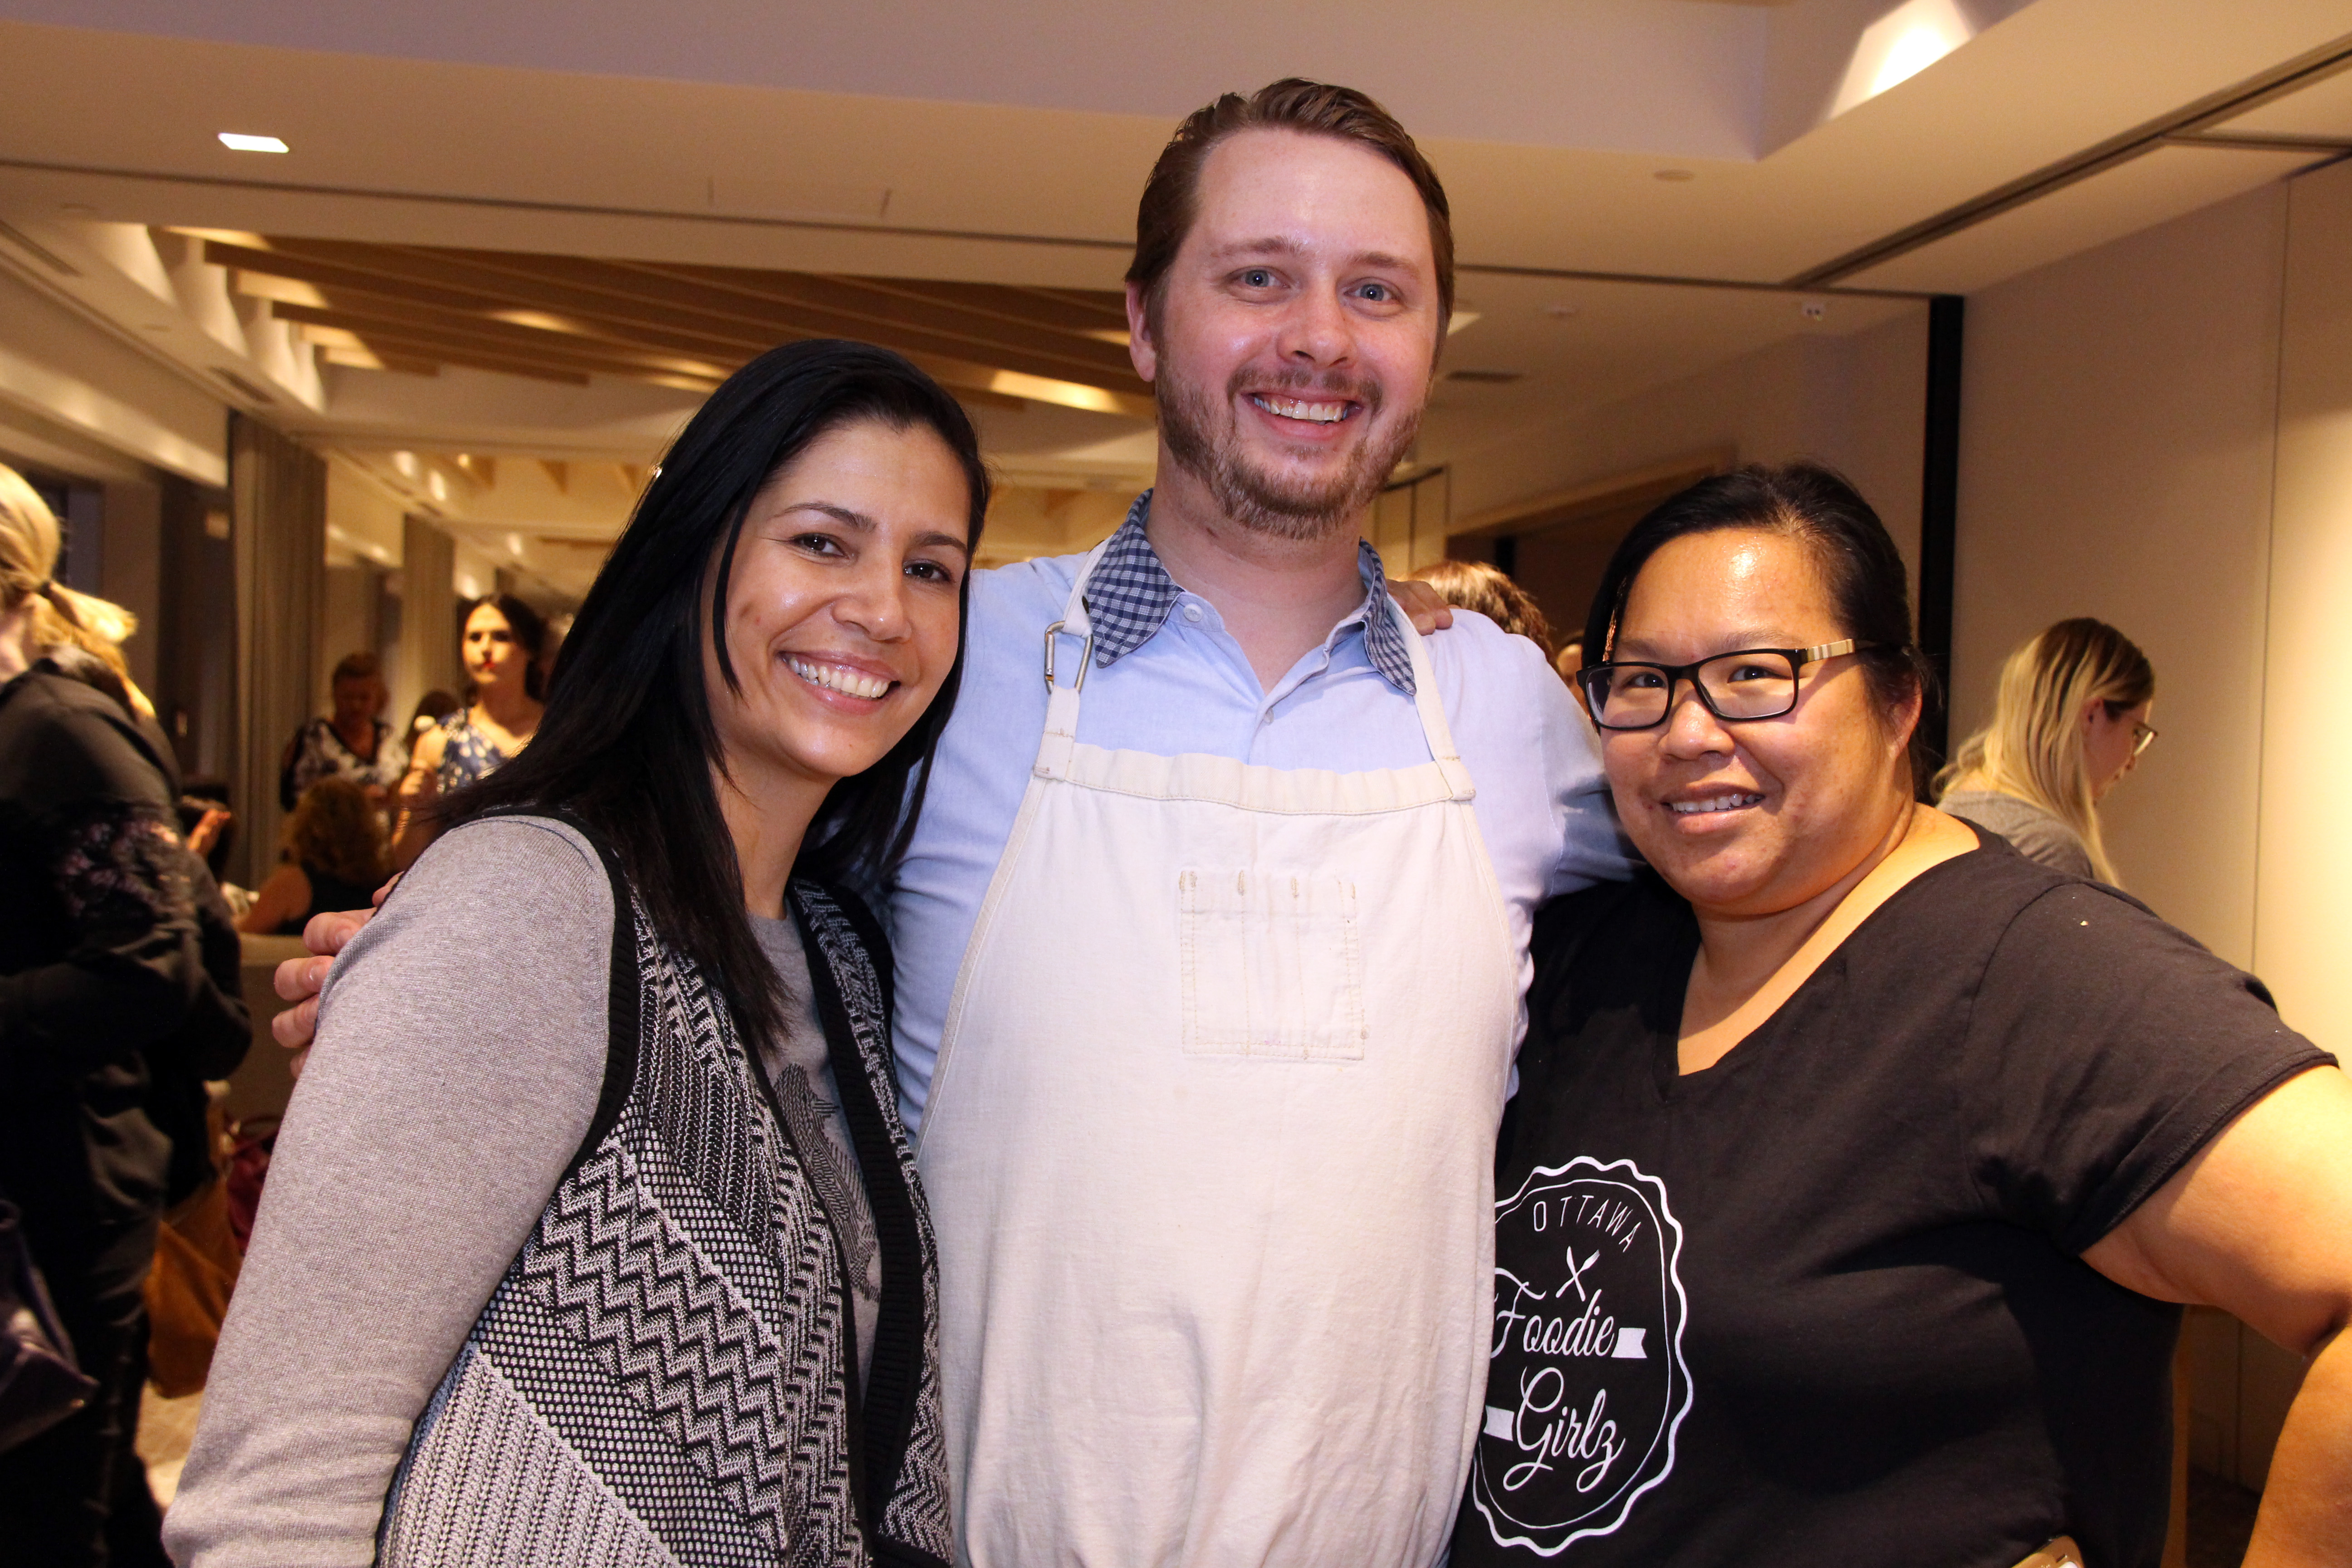 From left, Cristina Velez, director of human resources at Andaz Ottawa Byward Market, with the hotel's executive chef, Stephen La Salle, and Judy Hum-Delaney, founder of Ottawa Foodie Girlz, on Friday, March 24, 2017, for Ladies' Night in support of Harmony House second-stage women's shelter. (Photo by Caroline Phillips)